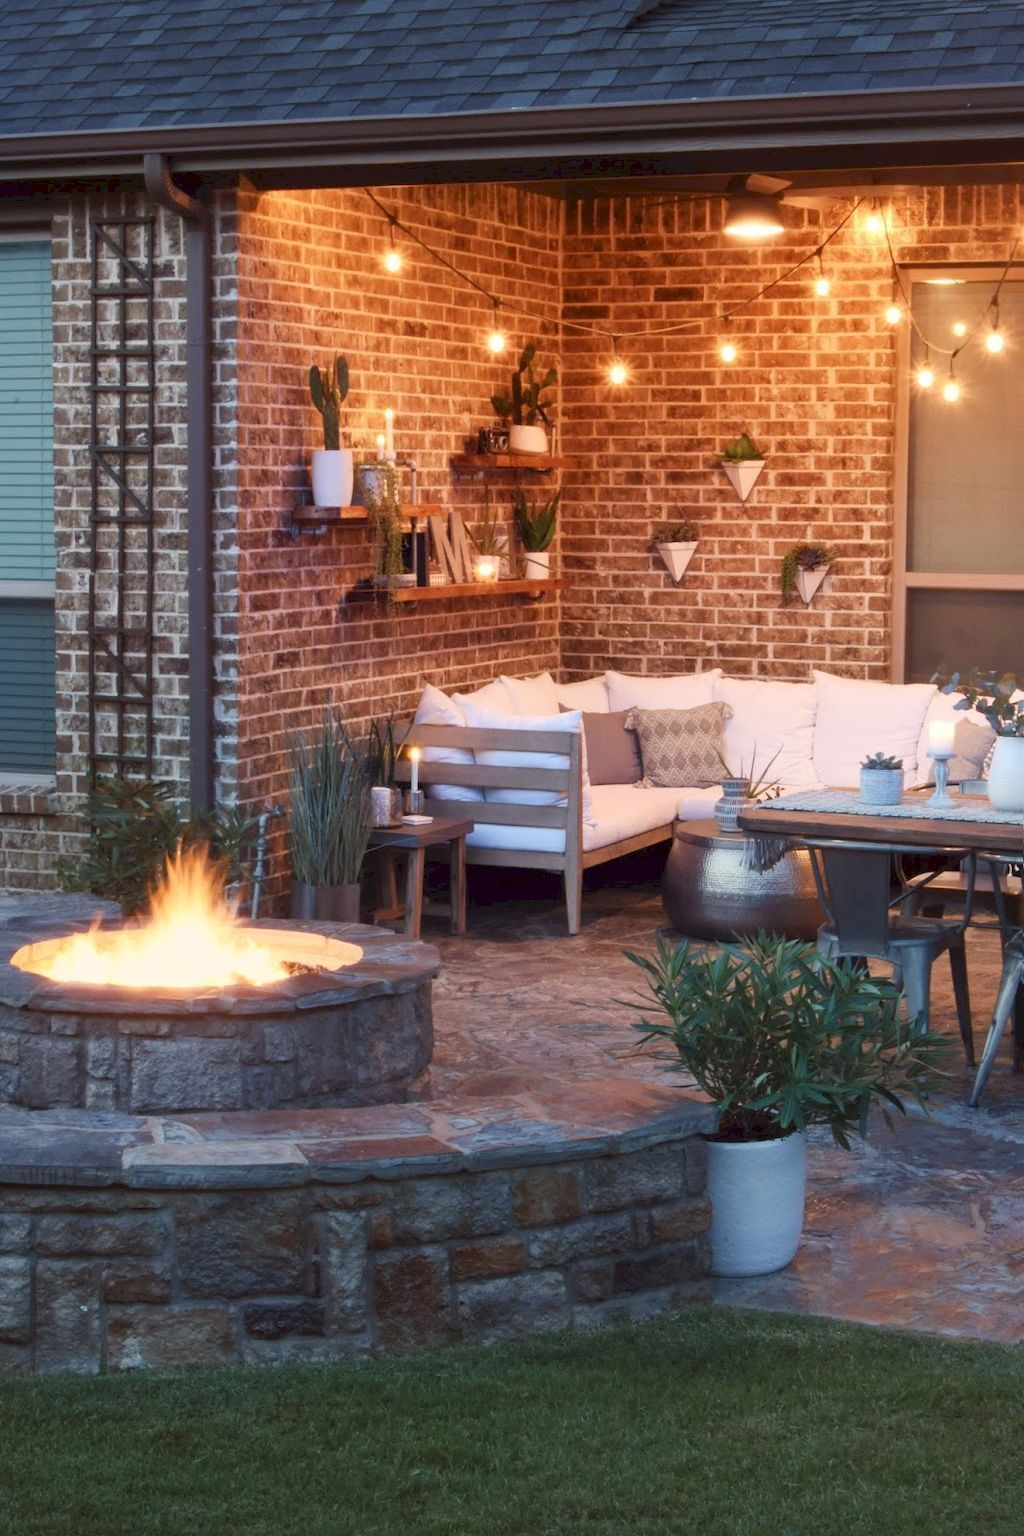 Awesome 35 Easy and Cheap Fire Pit and Backyard ...